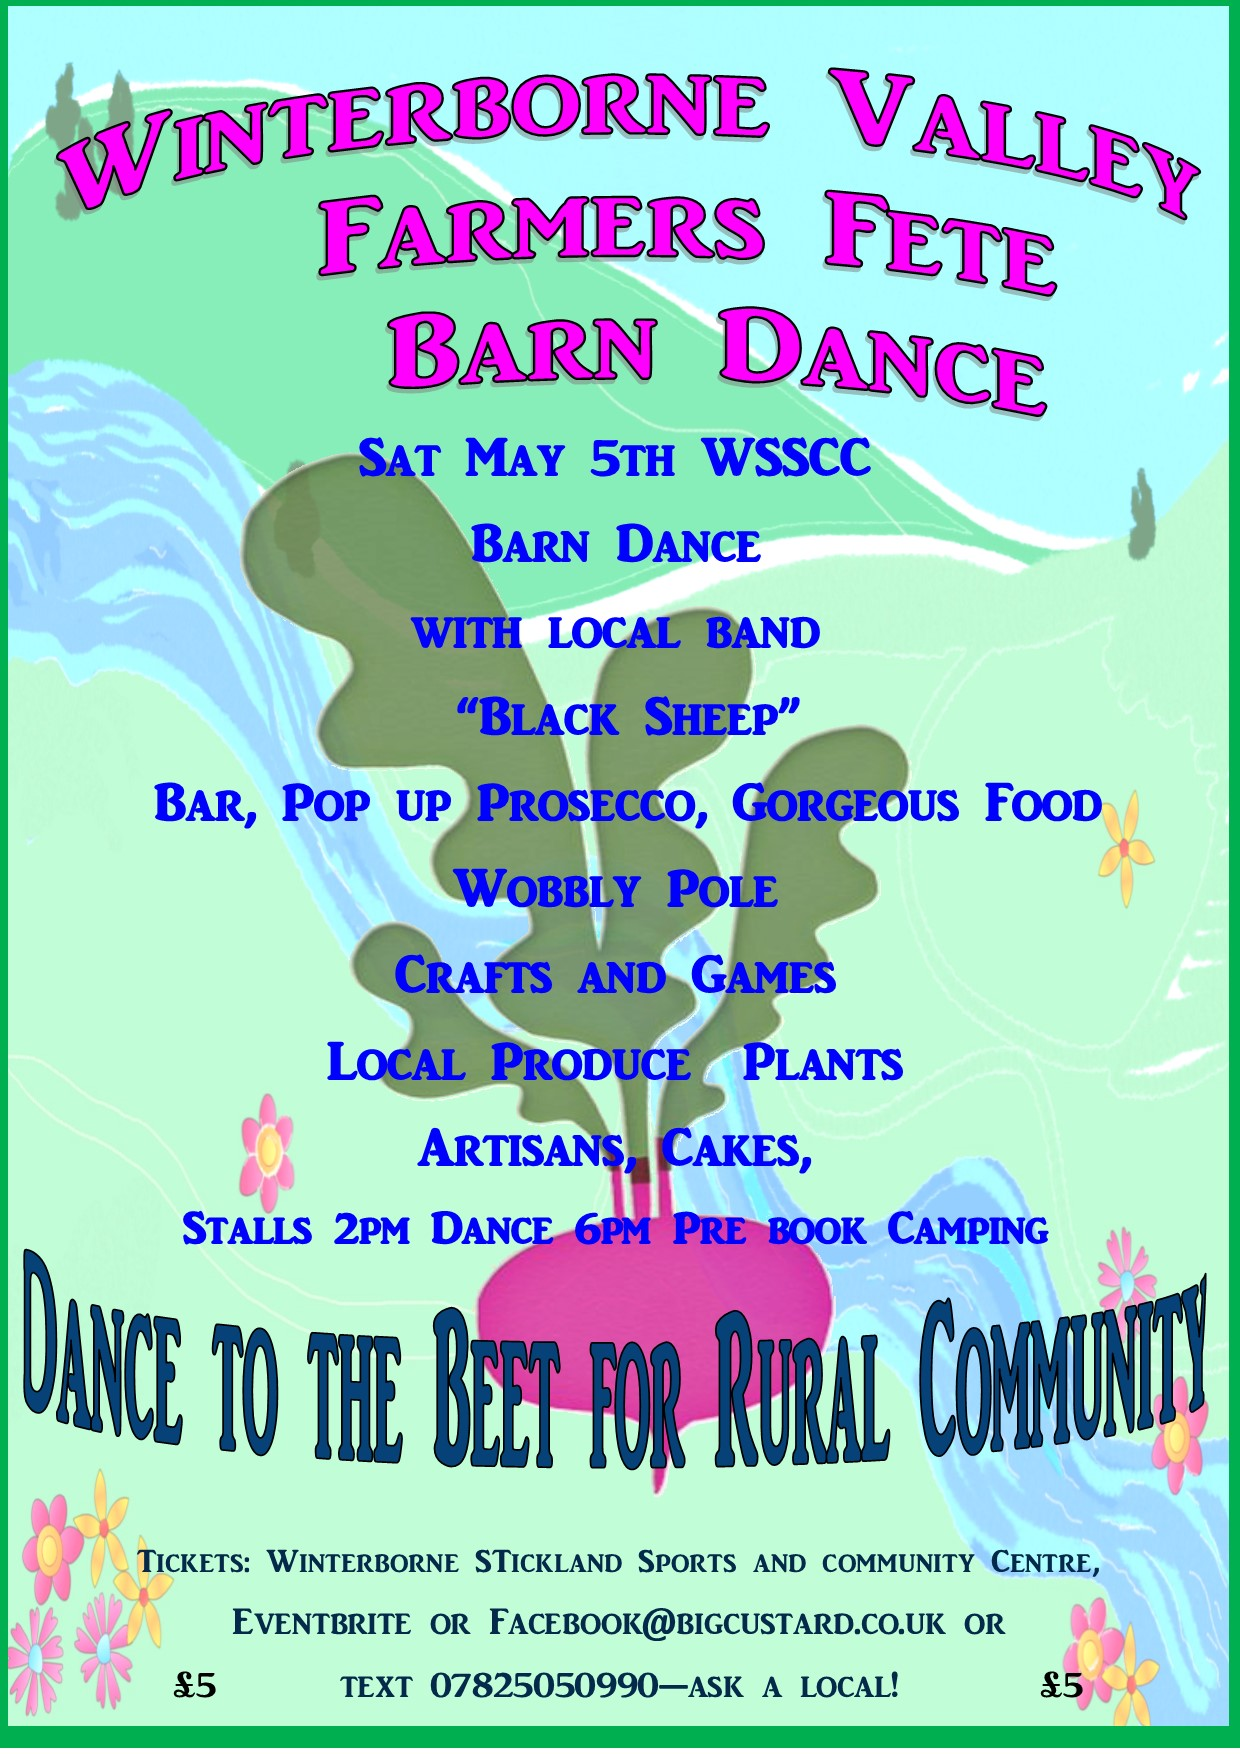 Farmers Fete and Barn Dance